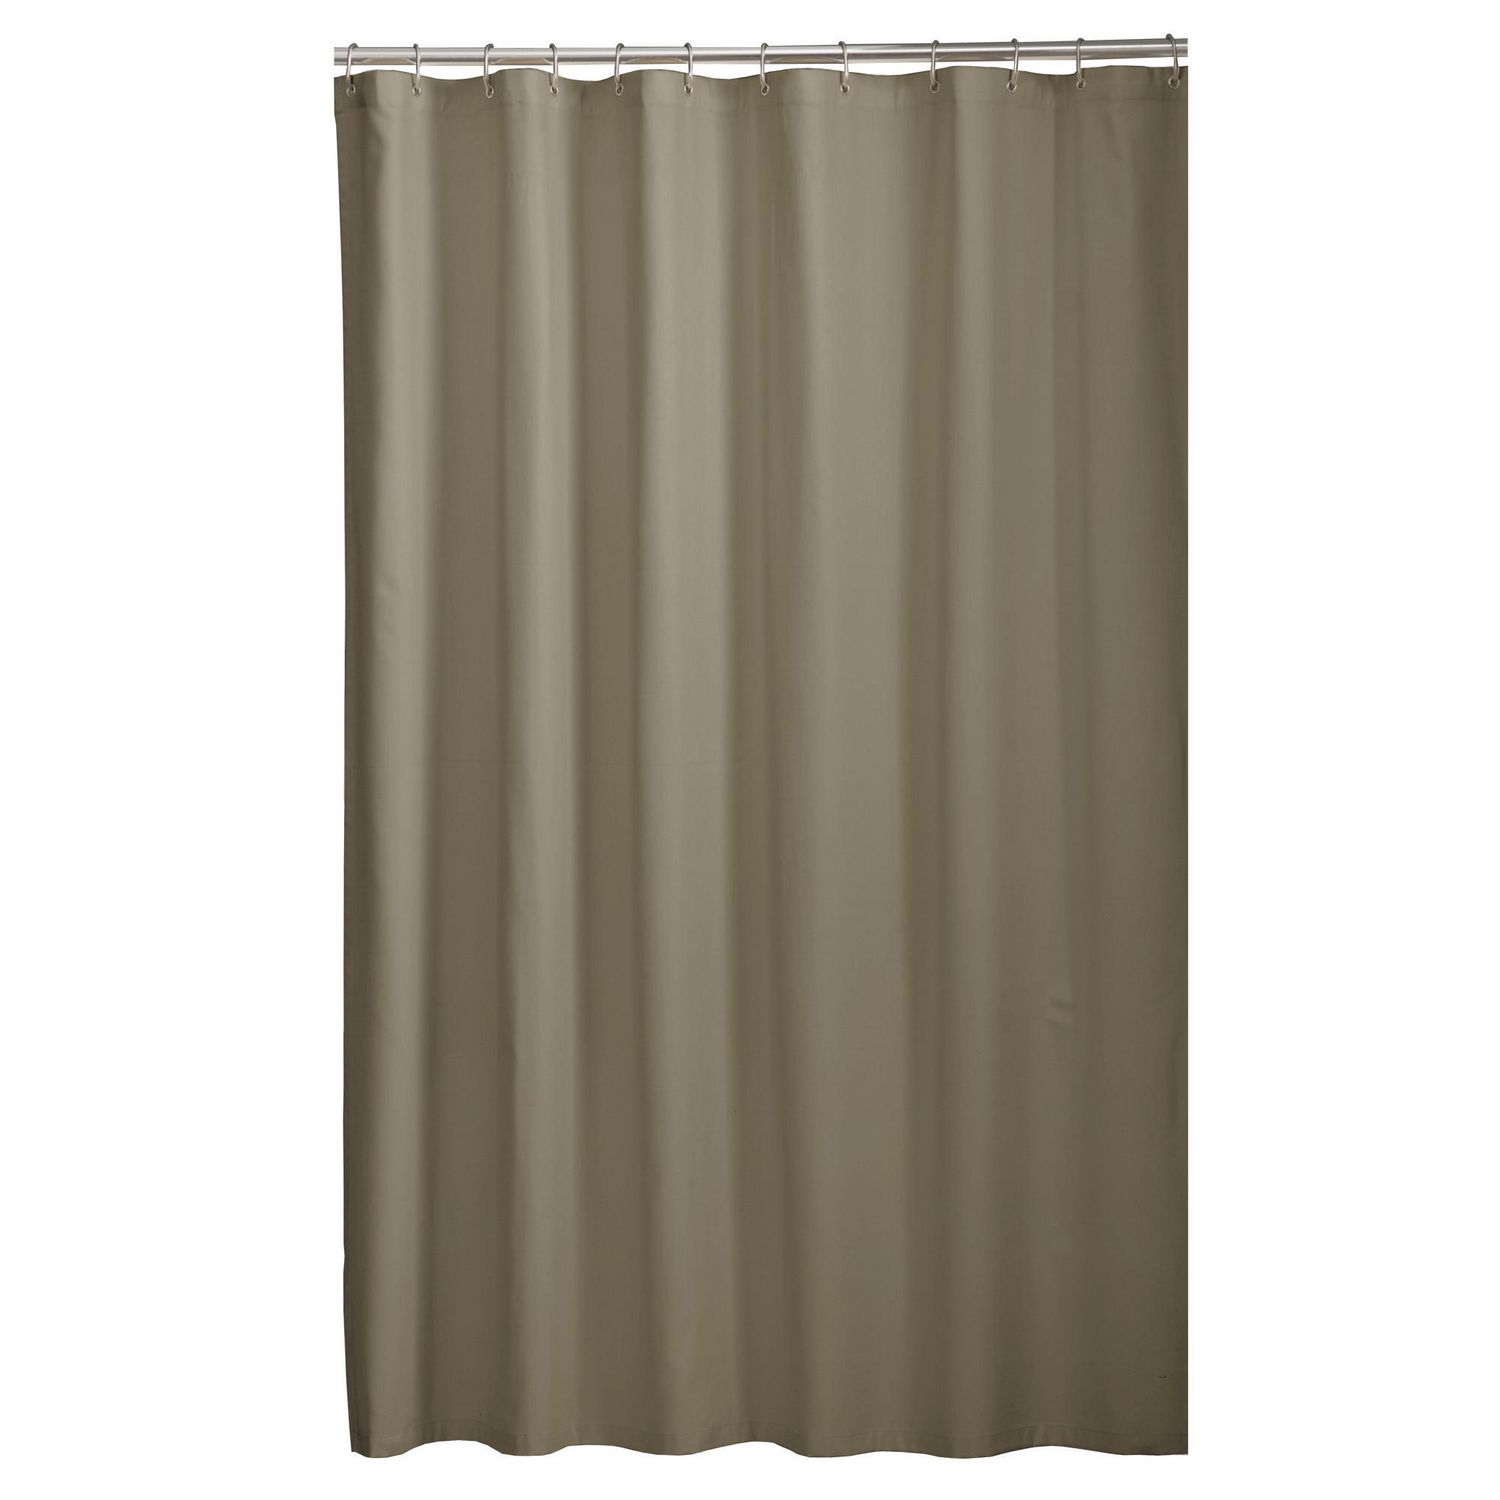 Mainstays Microfiber Fabric Shower Curtain Liner